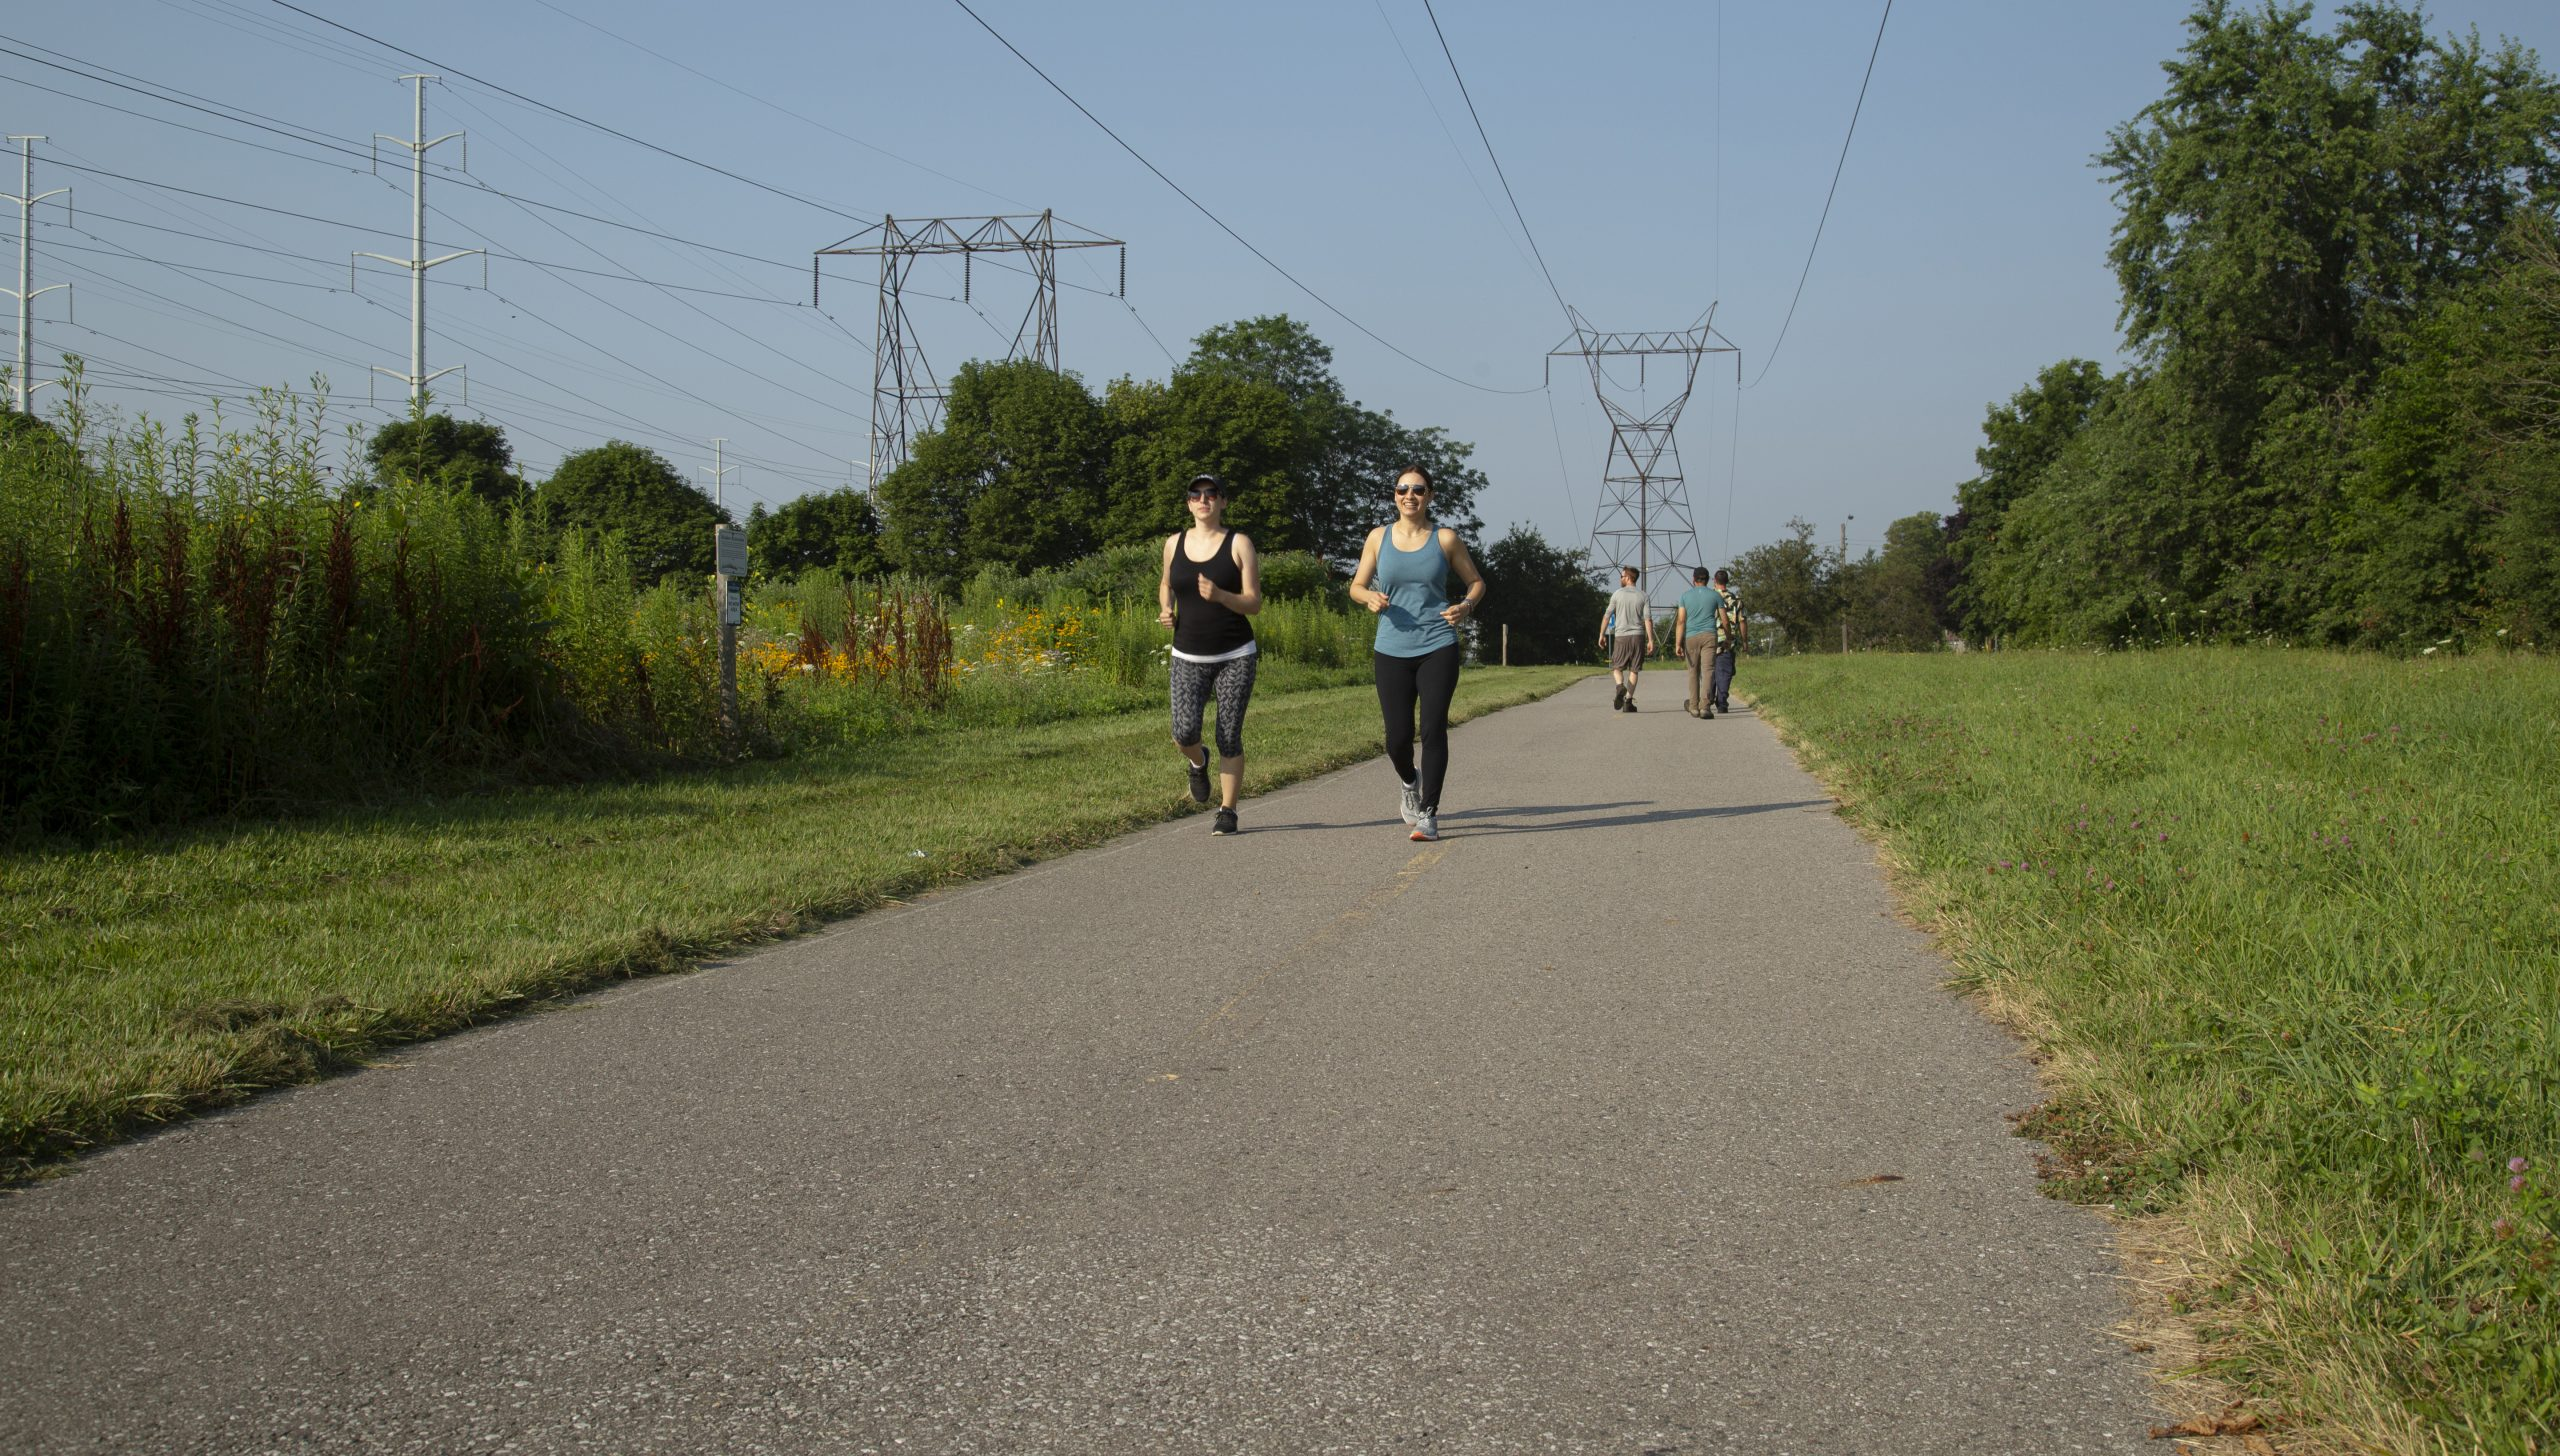 joggers and pedestrians on hydro corridor trail network in Scarborough